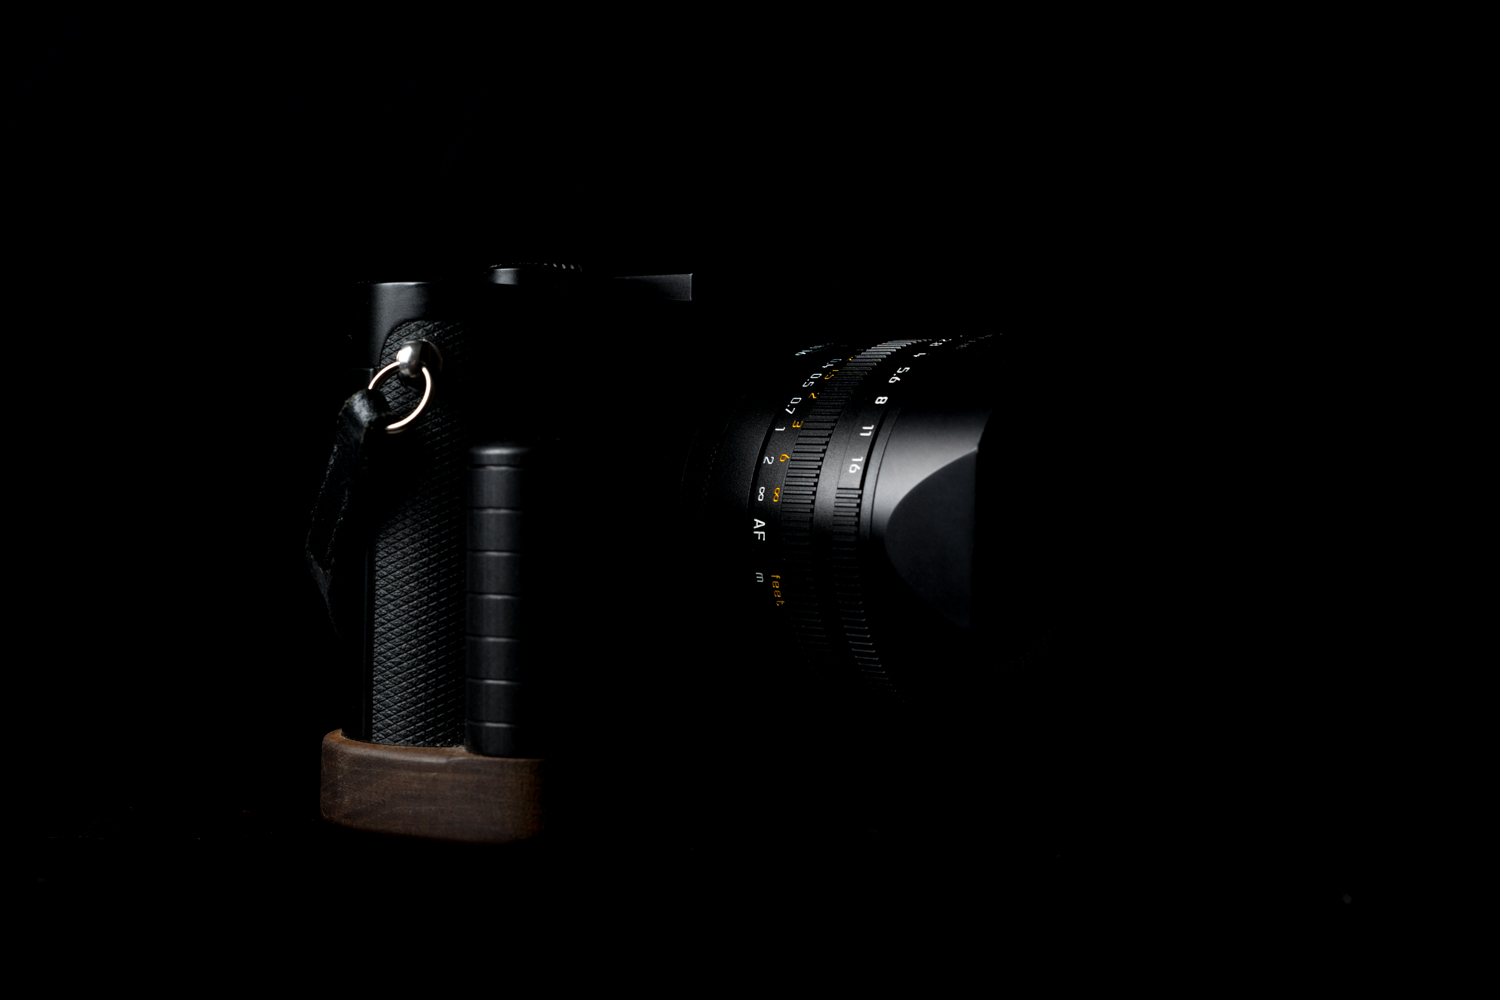 Shot of the Leica Q taken with the Sony A7 and Zeiss 24-70 f4.